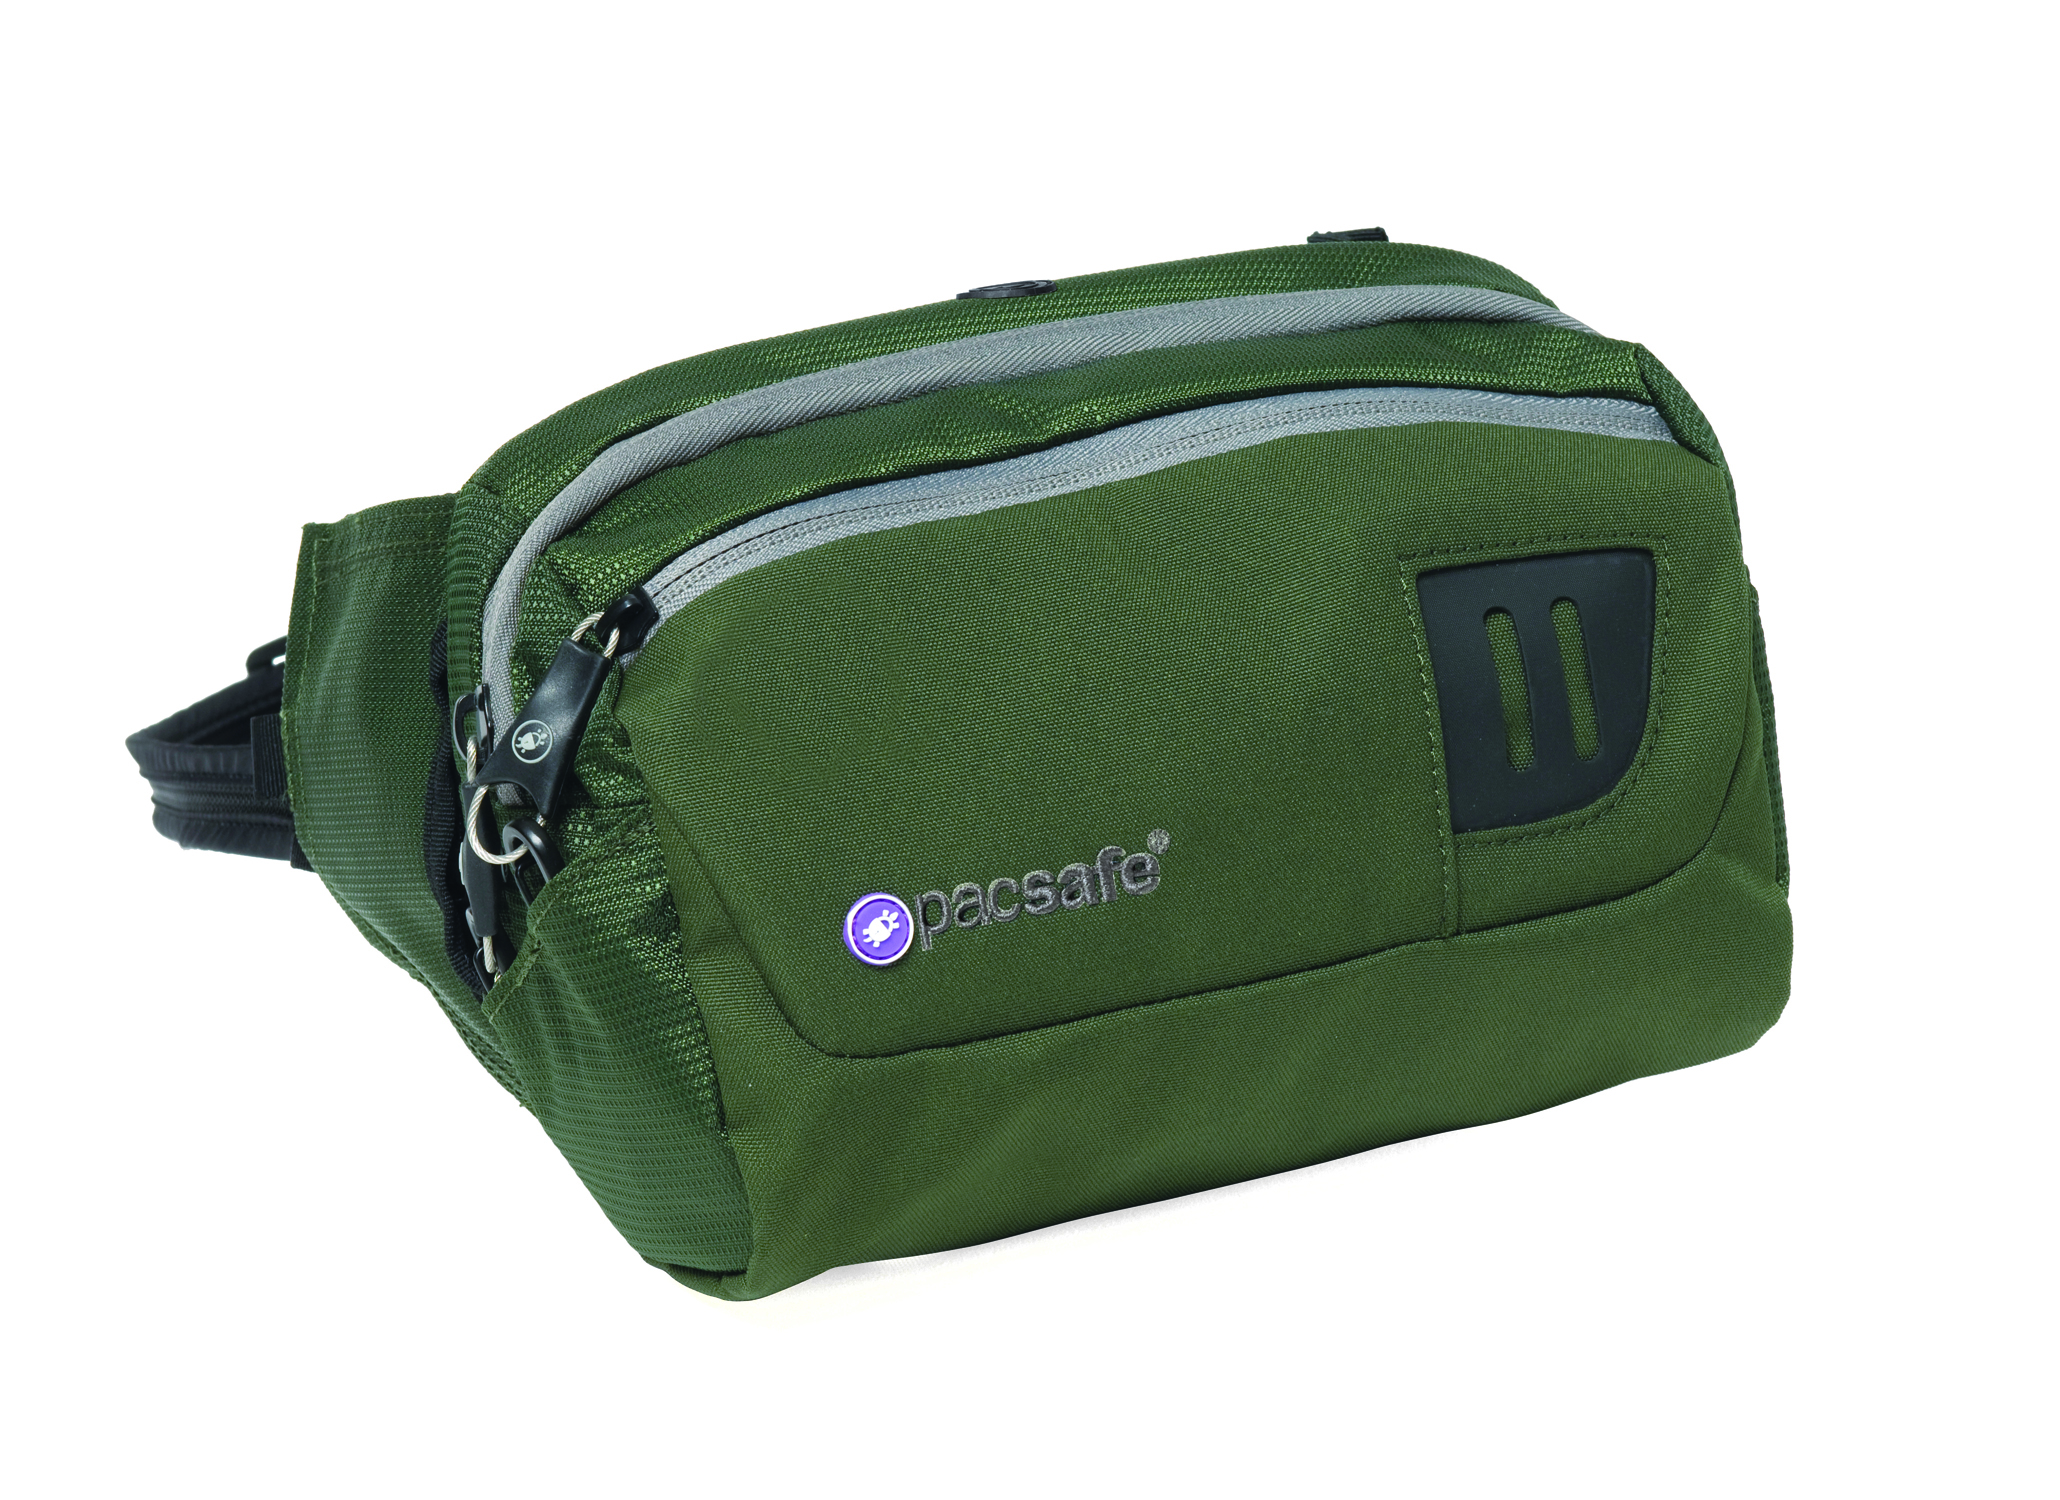 PacSafe-EDC-Hip-Carry-Pack-VentureSafe-100-Anti-Theft-Technology